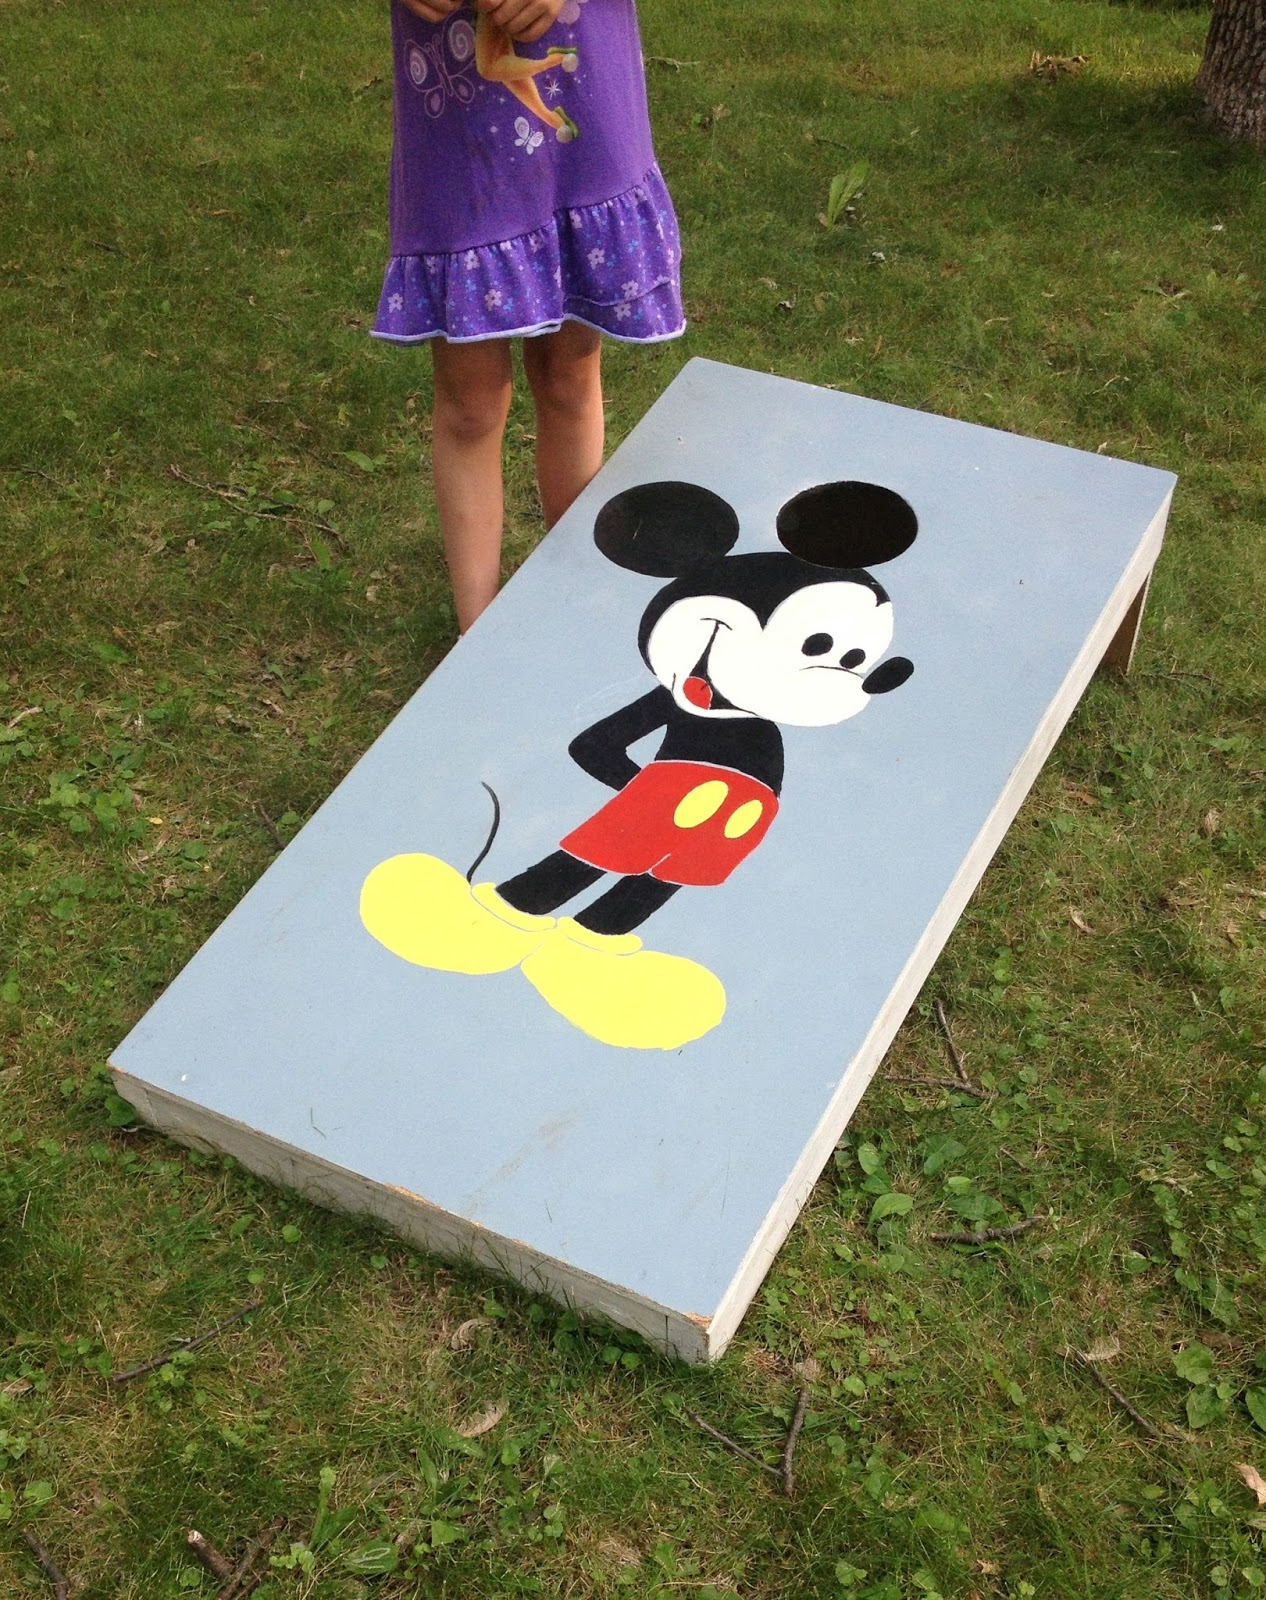 diy lawn game cornhole or mousehole - Cornhole Design Ideas